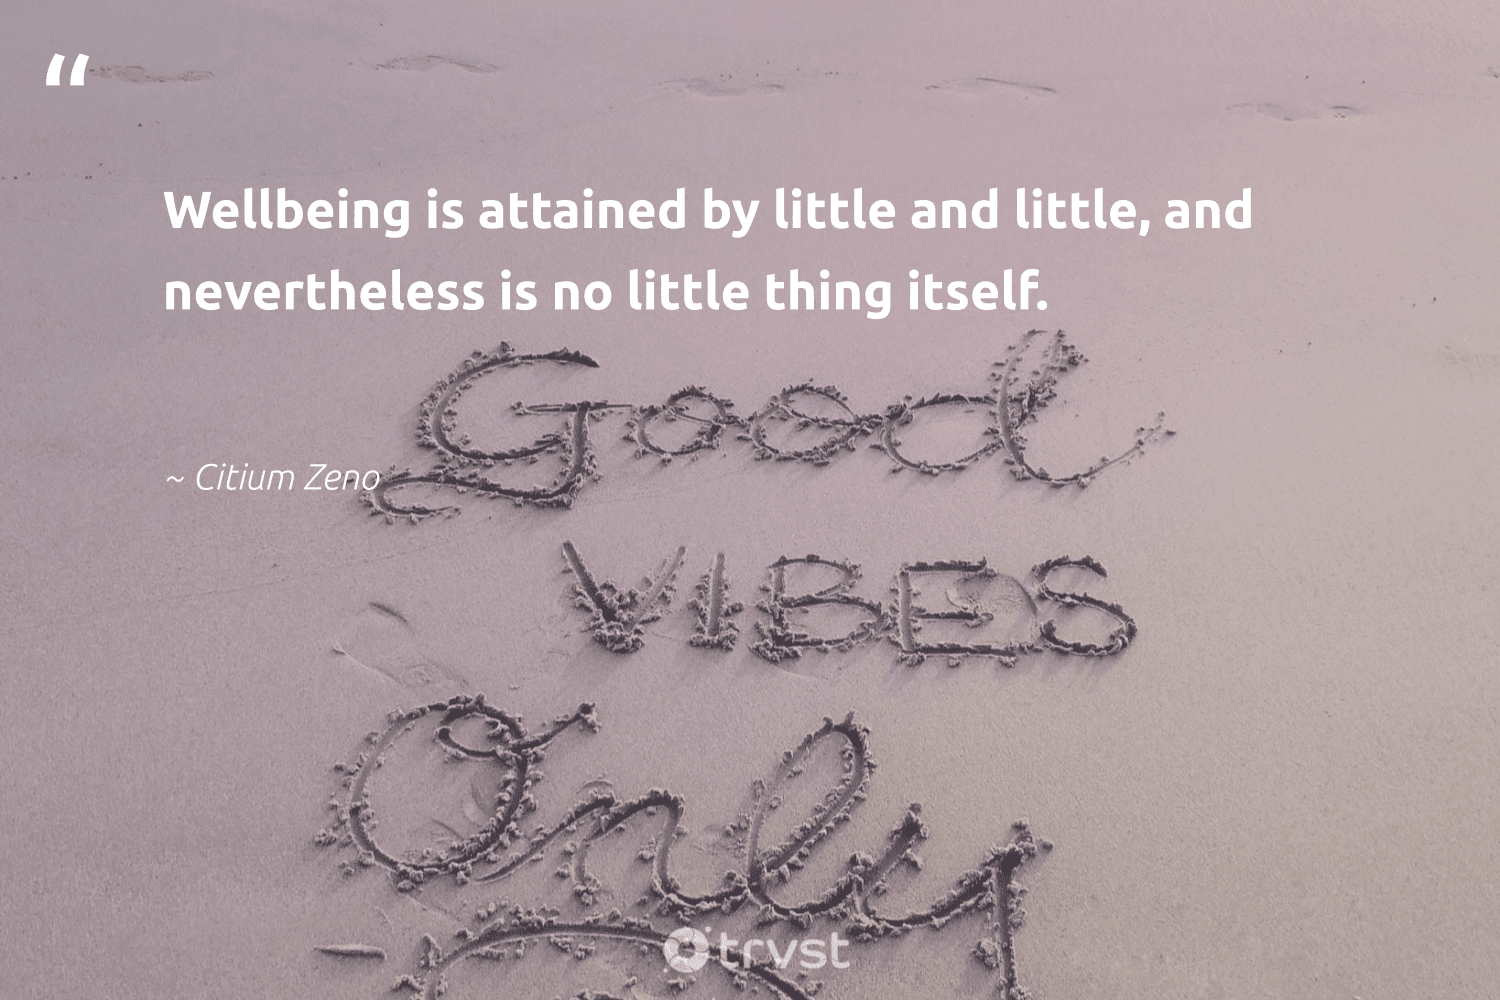 """""""Wellbeing is attained by little and little, and nevertheless is no little thing itself.""""  - Citium Zeno #trvst #quotes #wellbeing #healthyliving #changemakers #togetherwecan #takeaction #healthylife #begreat #mindset #beinspired #healthy"""